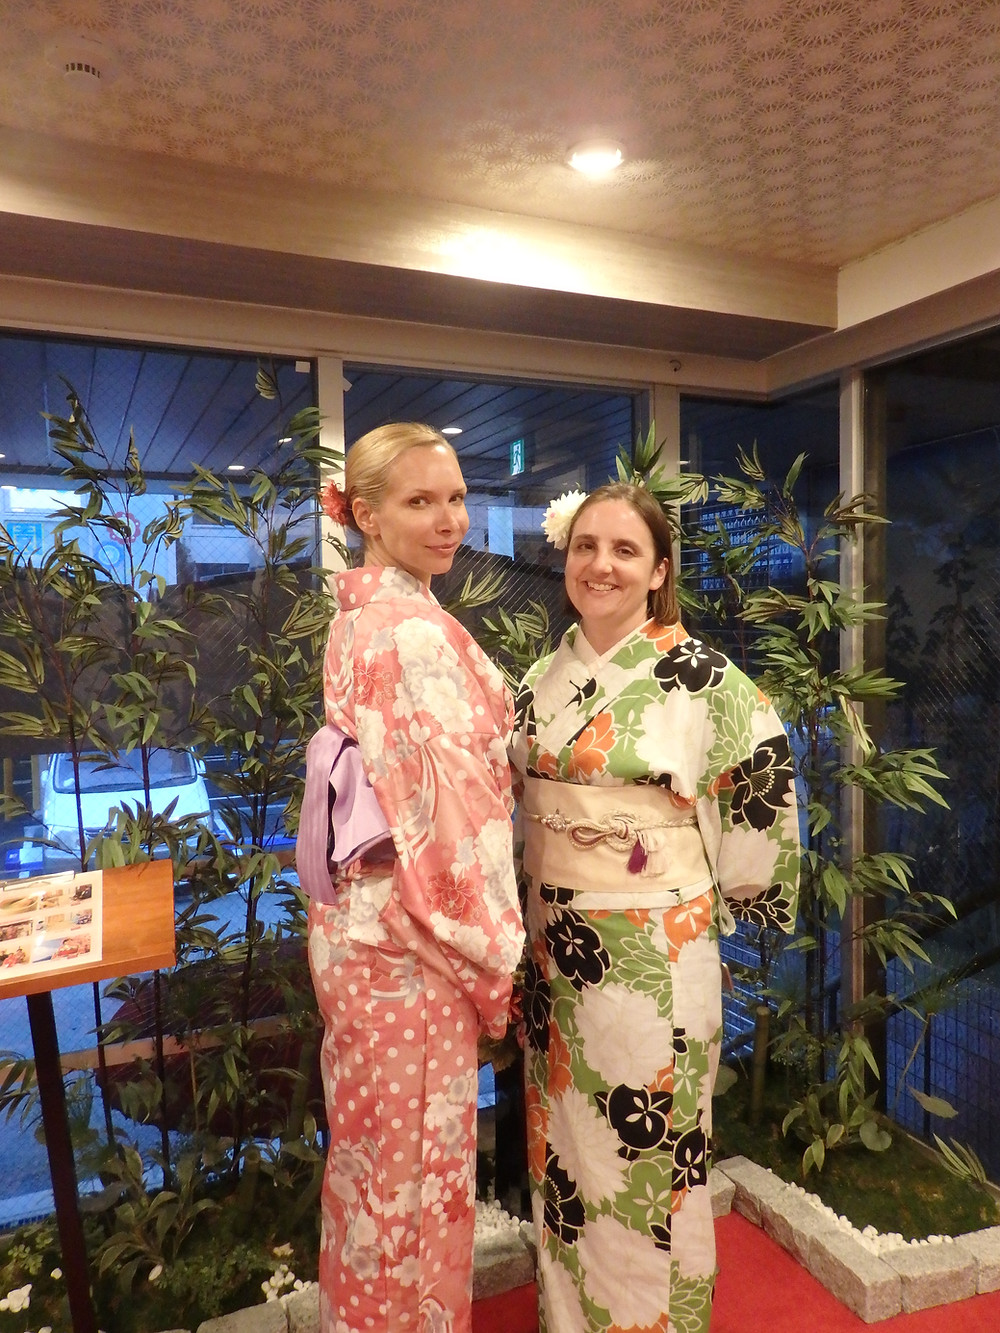 Customers dressed up in a kimono